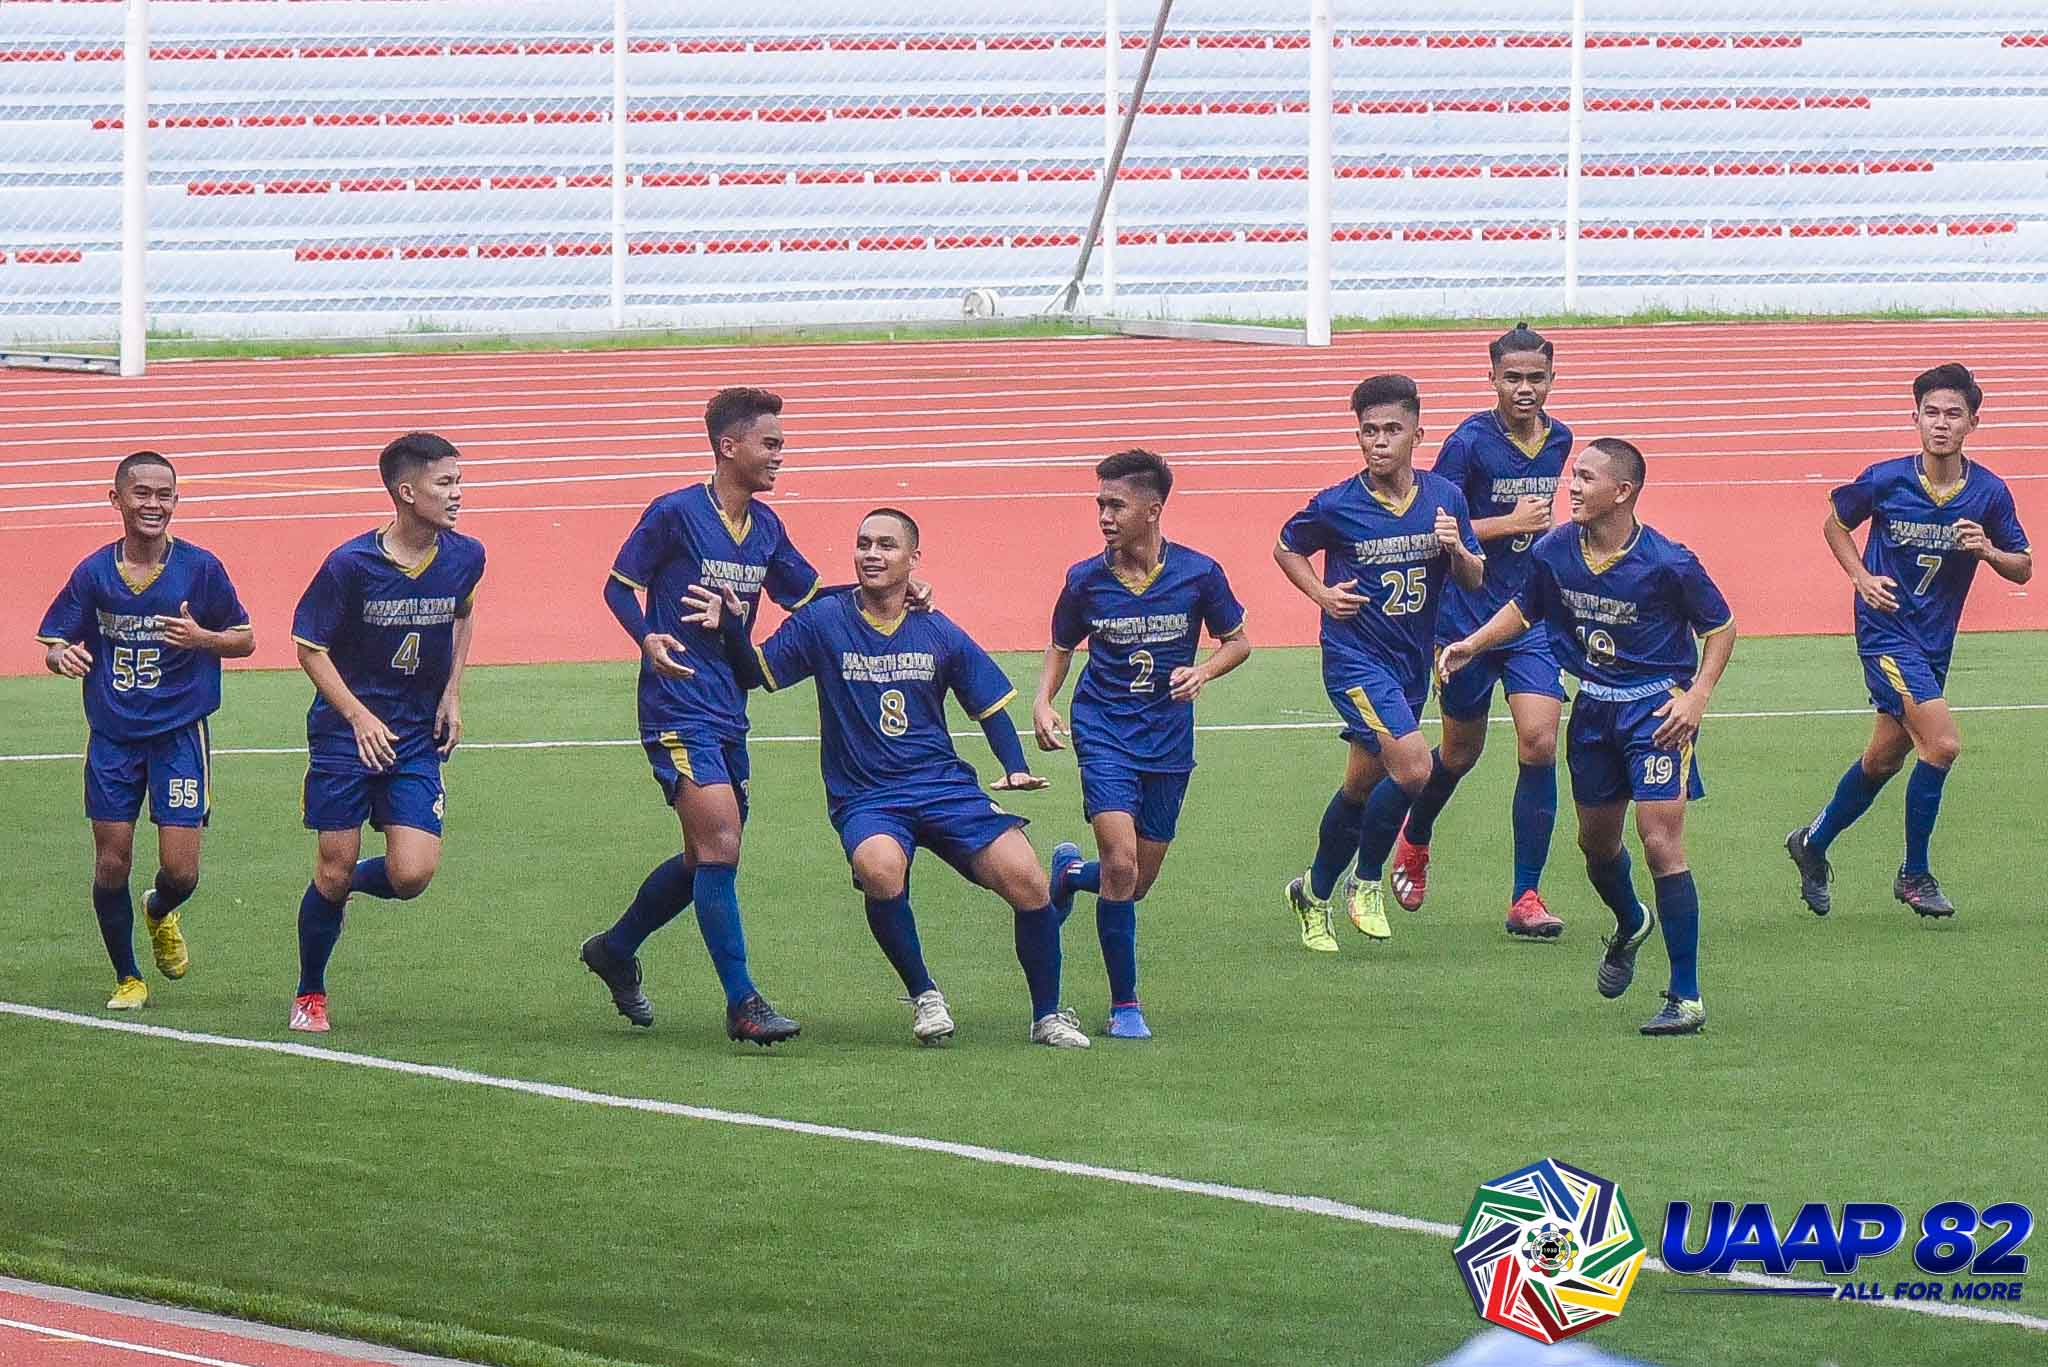 NU Bullpups, Ateneo Blue Eaglets score opening day wins in UAAP Jrs Football - Tiebreaker Times